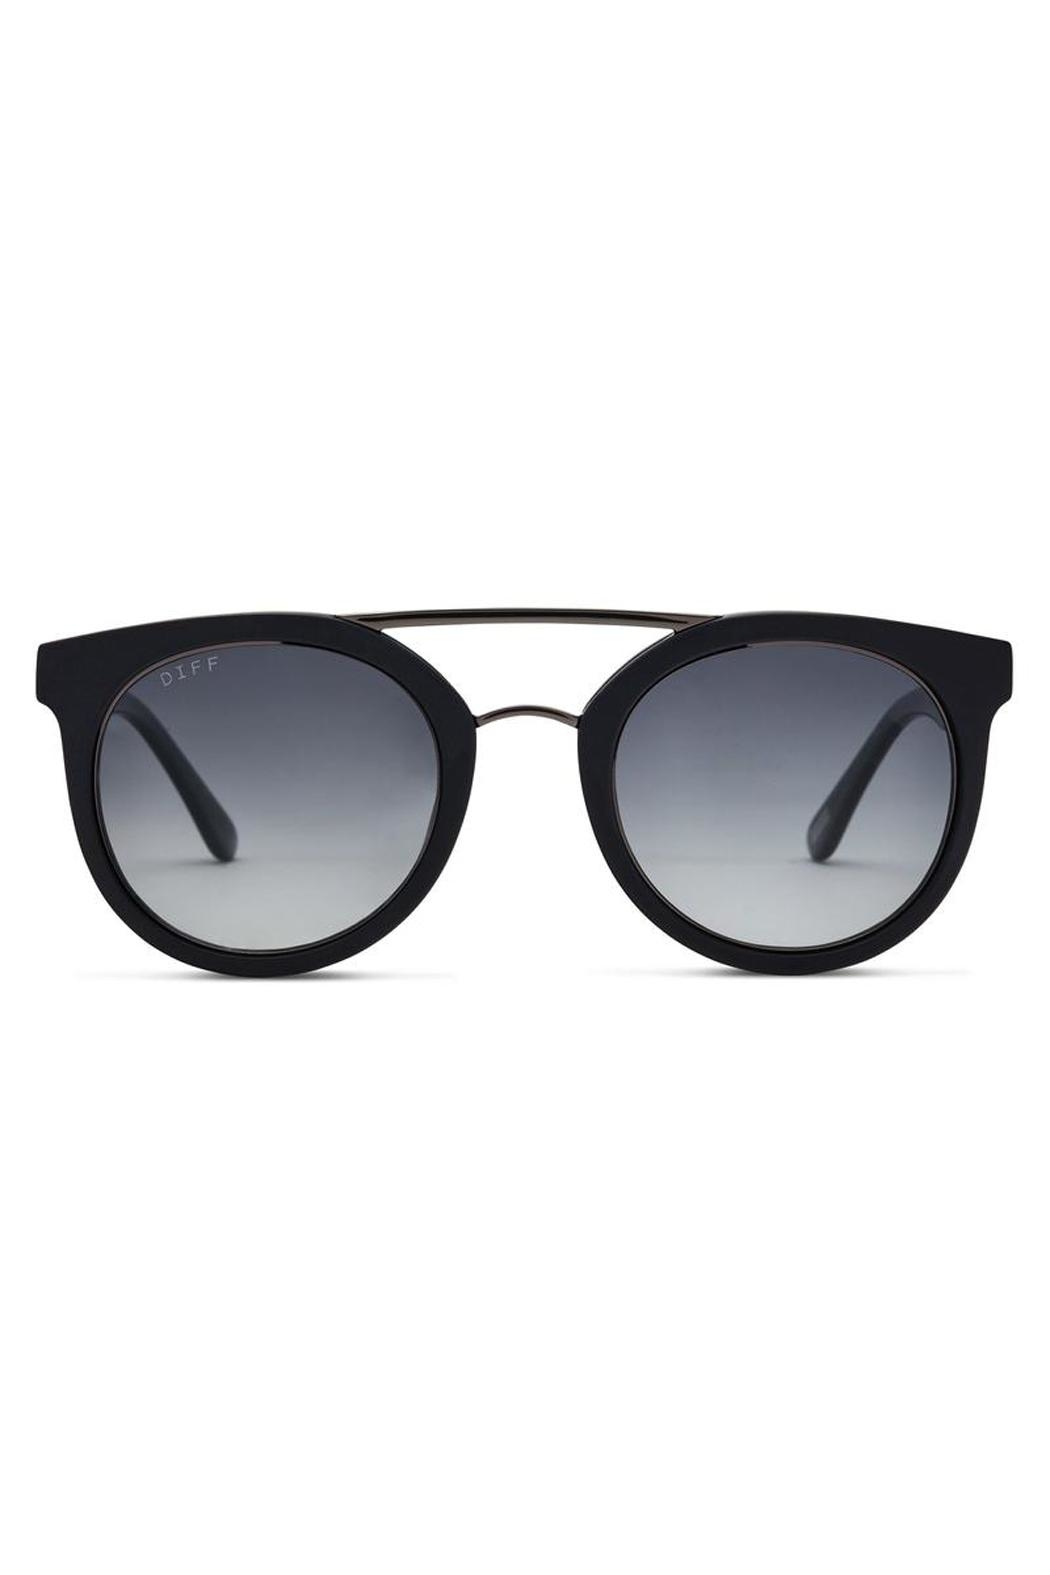 Diff Eyewear Modern Round Sunglasses - Front Cropped Image